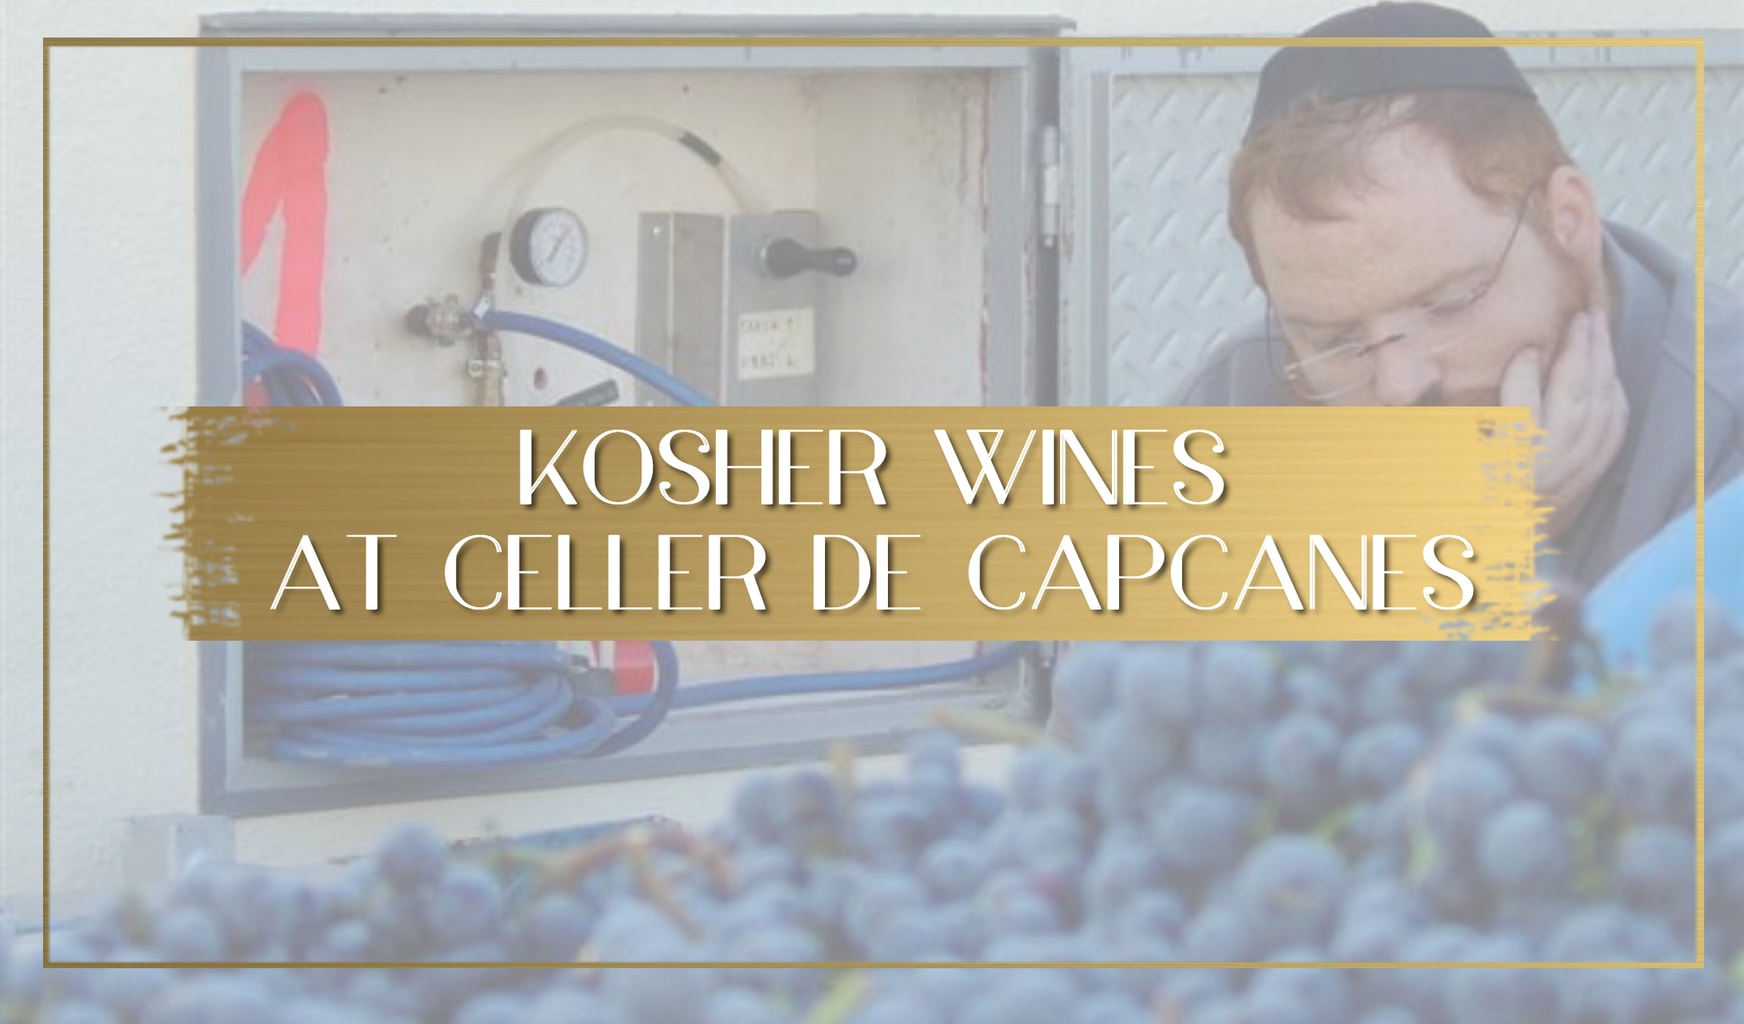 Learning about Kosher wines at Celler de Capcanes main